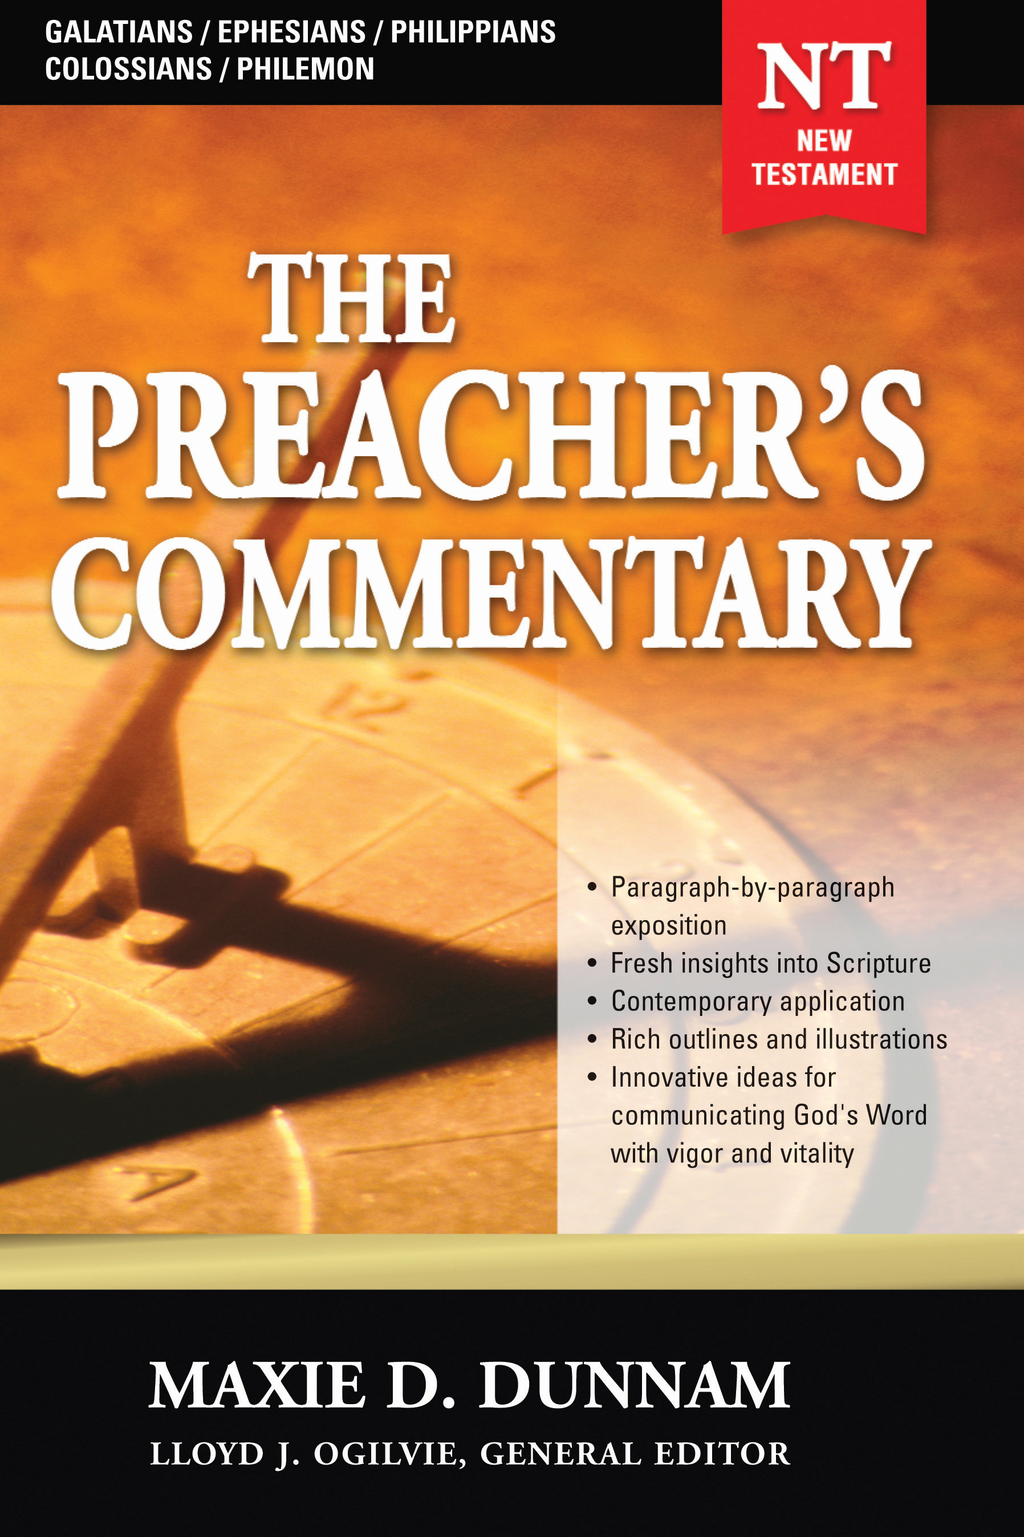 The Preacher's Commentary - Volume 31: Galatians / Ephesians / Philippians / Colossians / Philemon